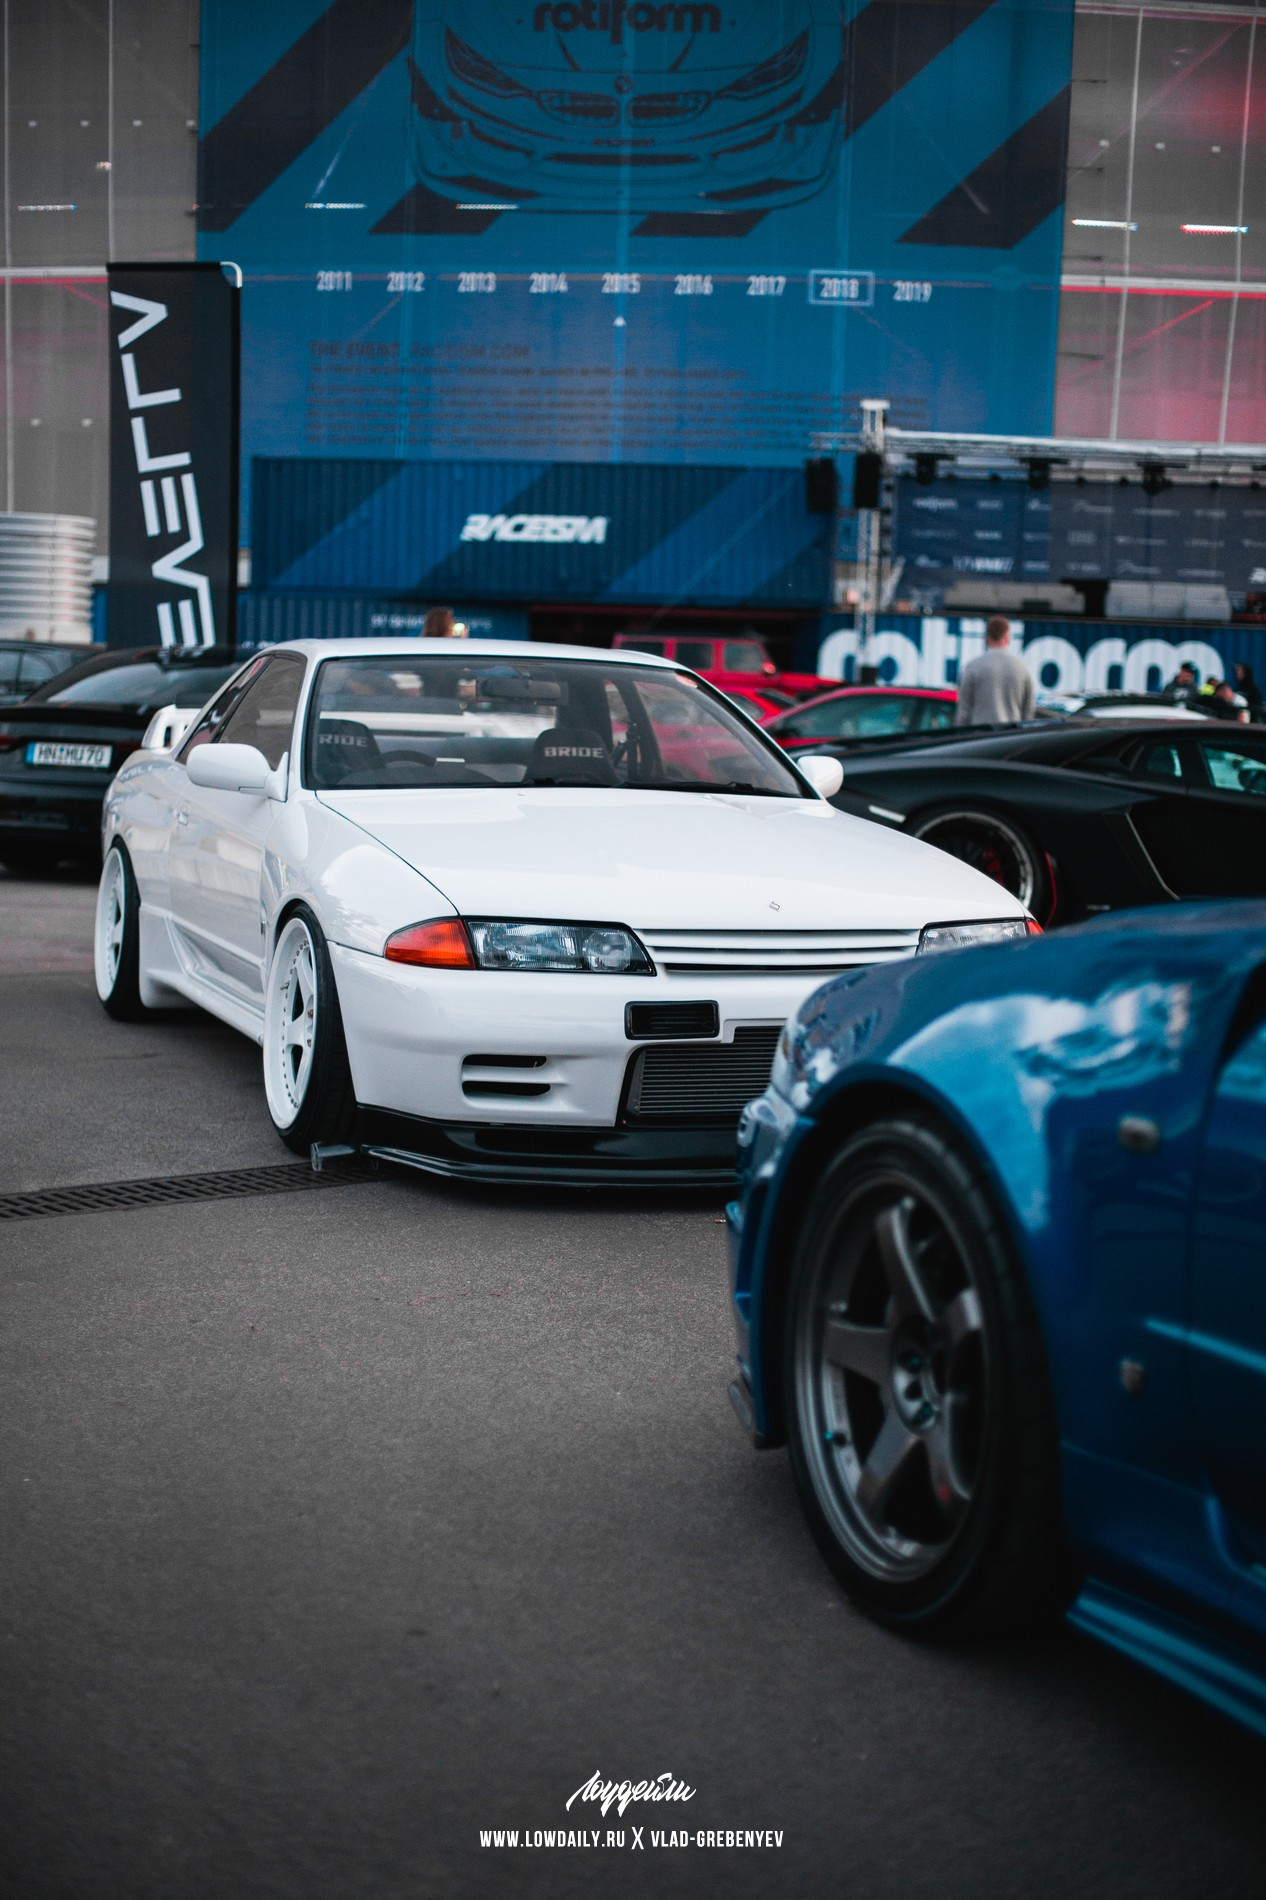 Raceism 2018 IMG_6944